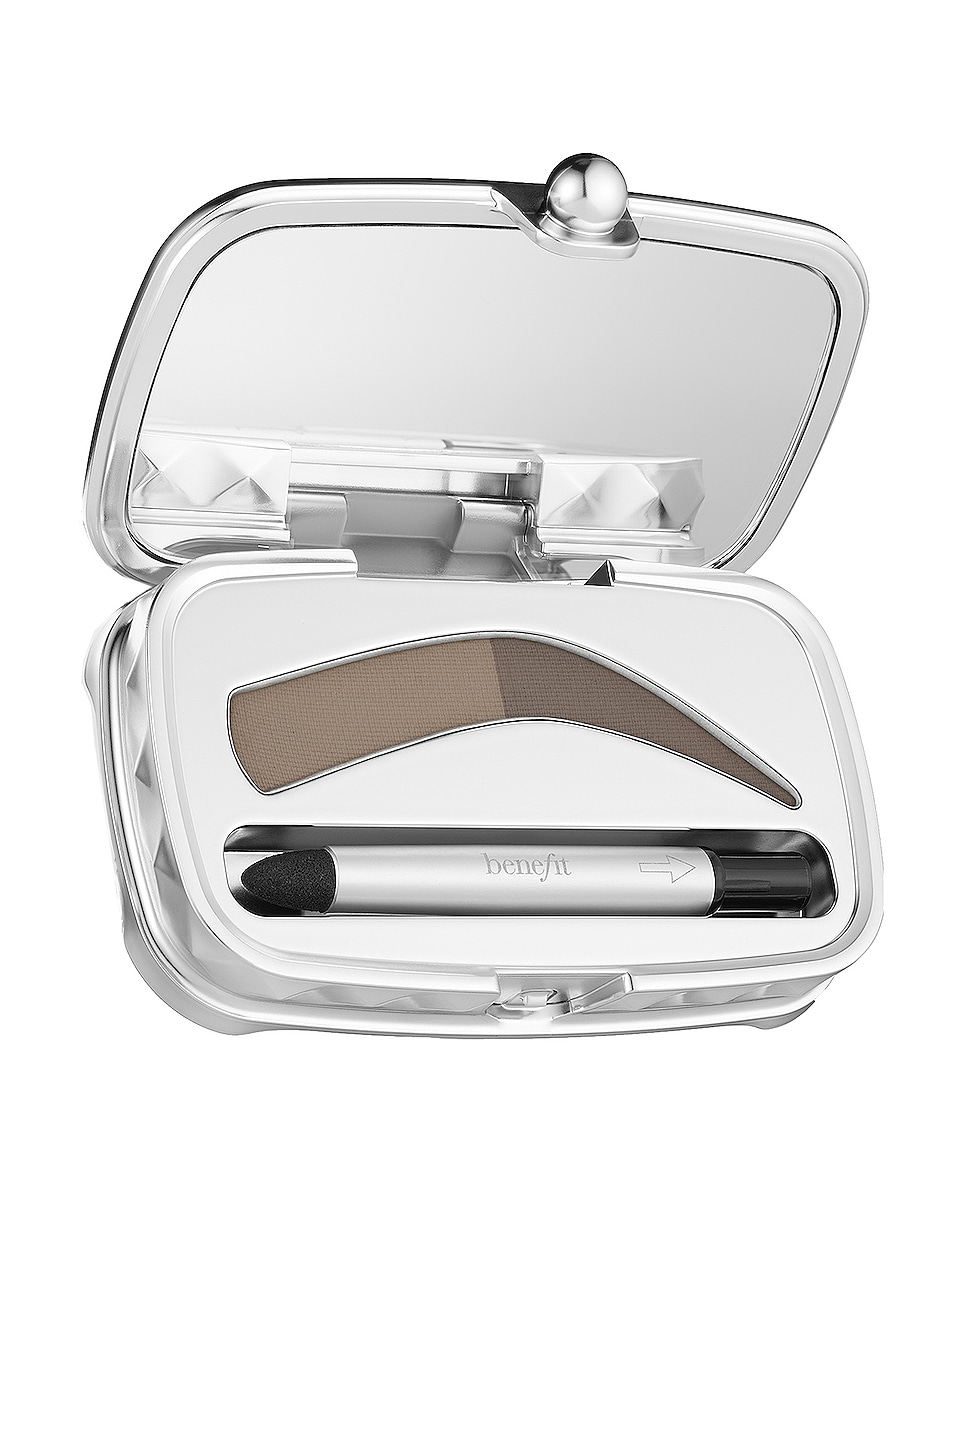 Benefit Cosmetics Foolproof Brow Powder in 03 Medium